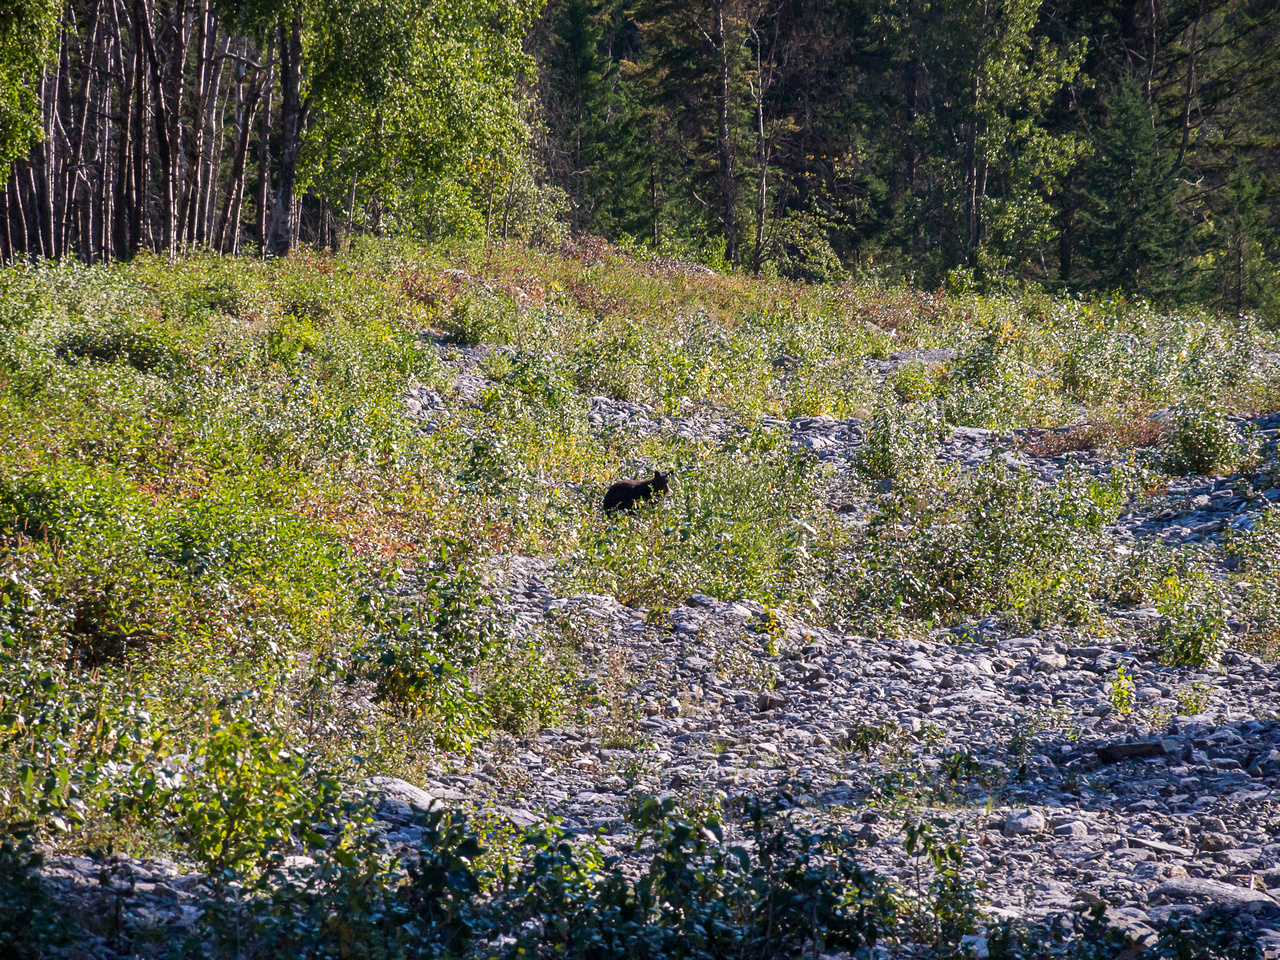 The bear that I KNEW we'd run into when I made the early morning decision to leave the bear spray at the car...